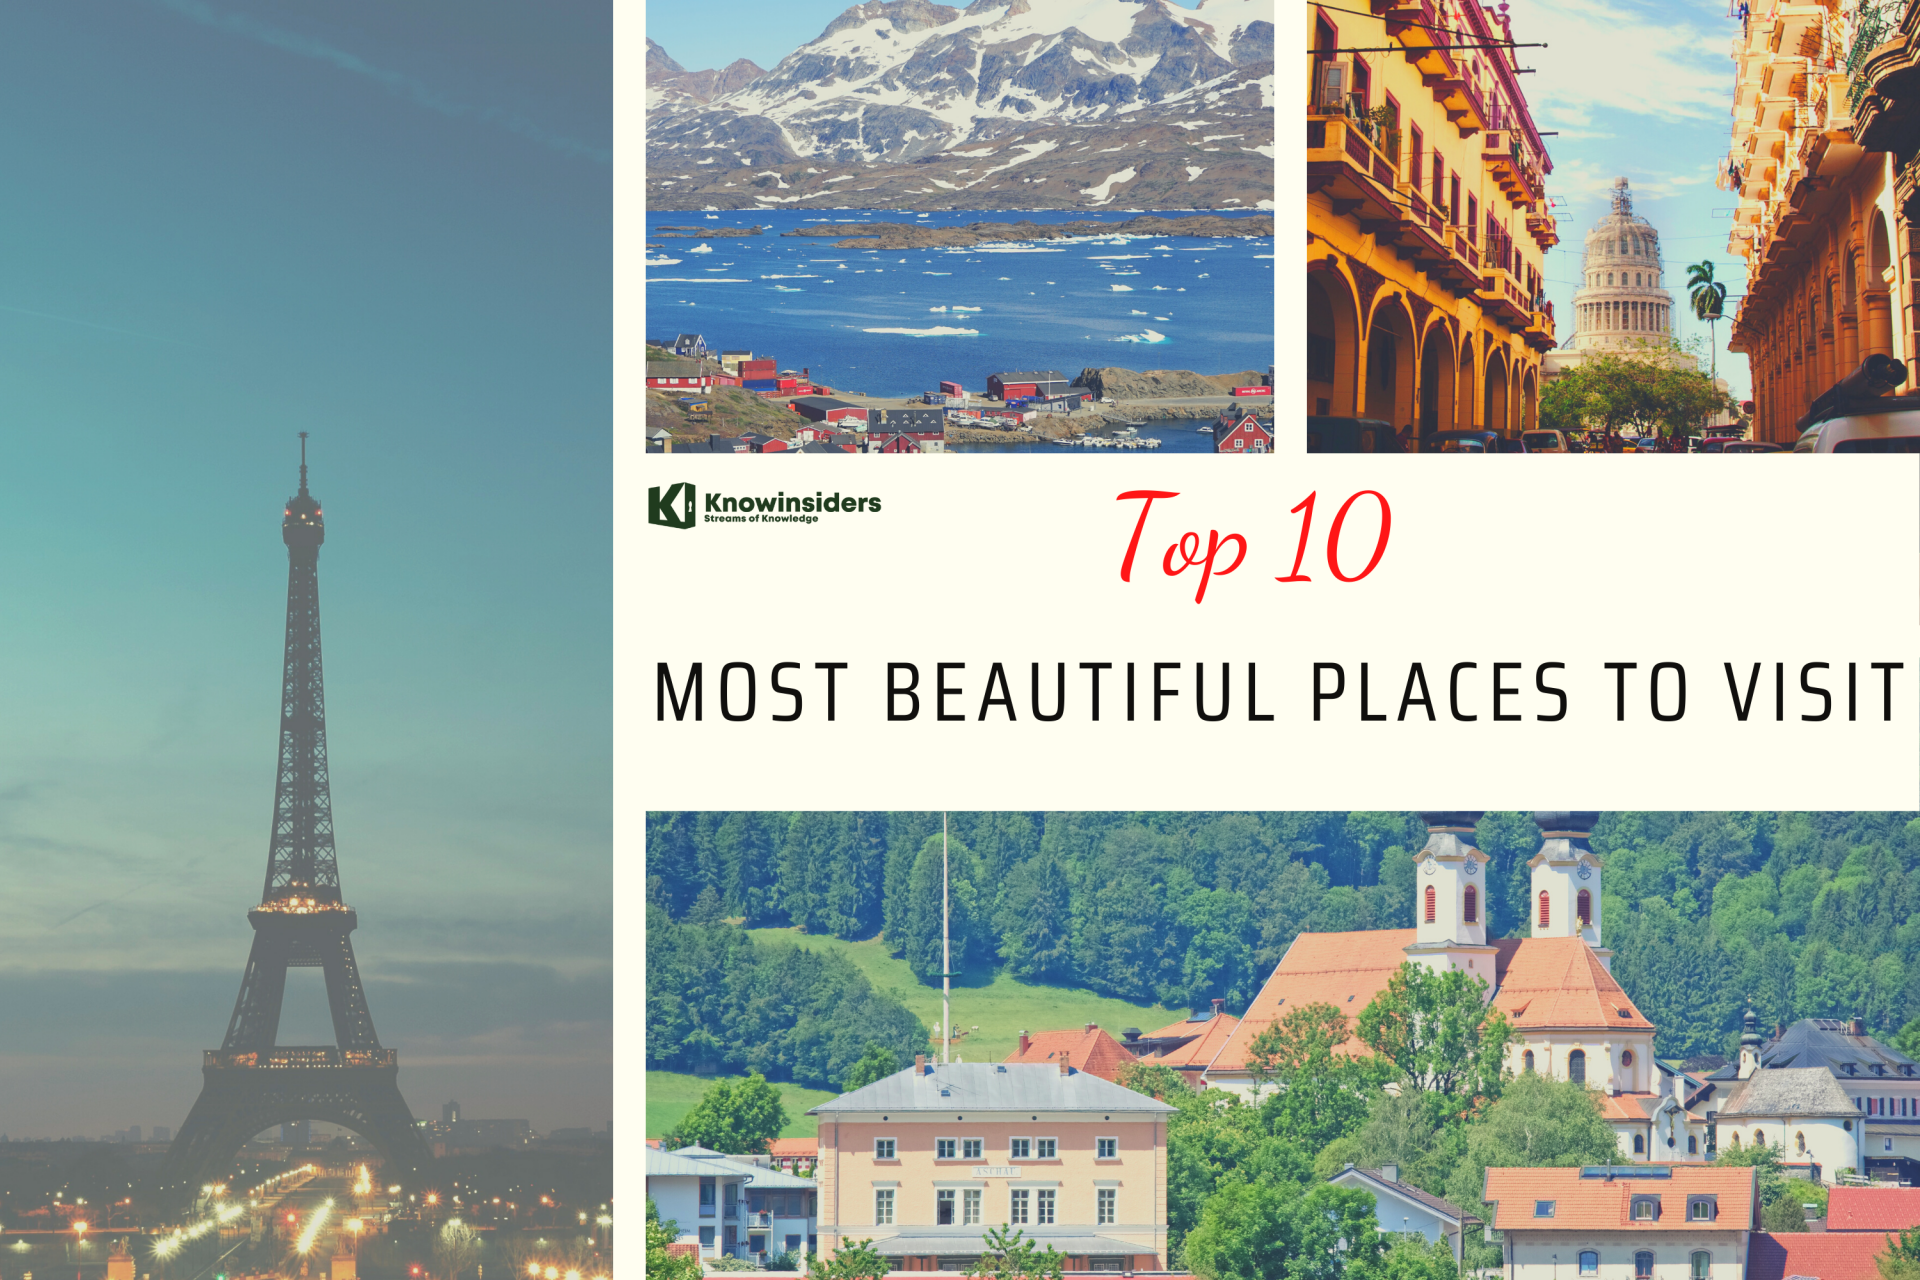 Top 10 Most Beautiful Places to Visit Around the World